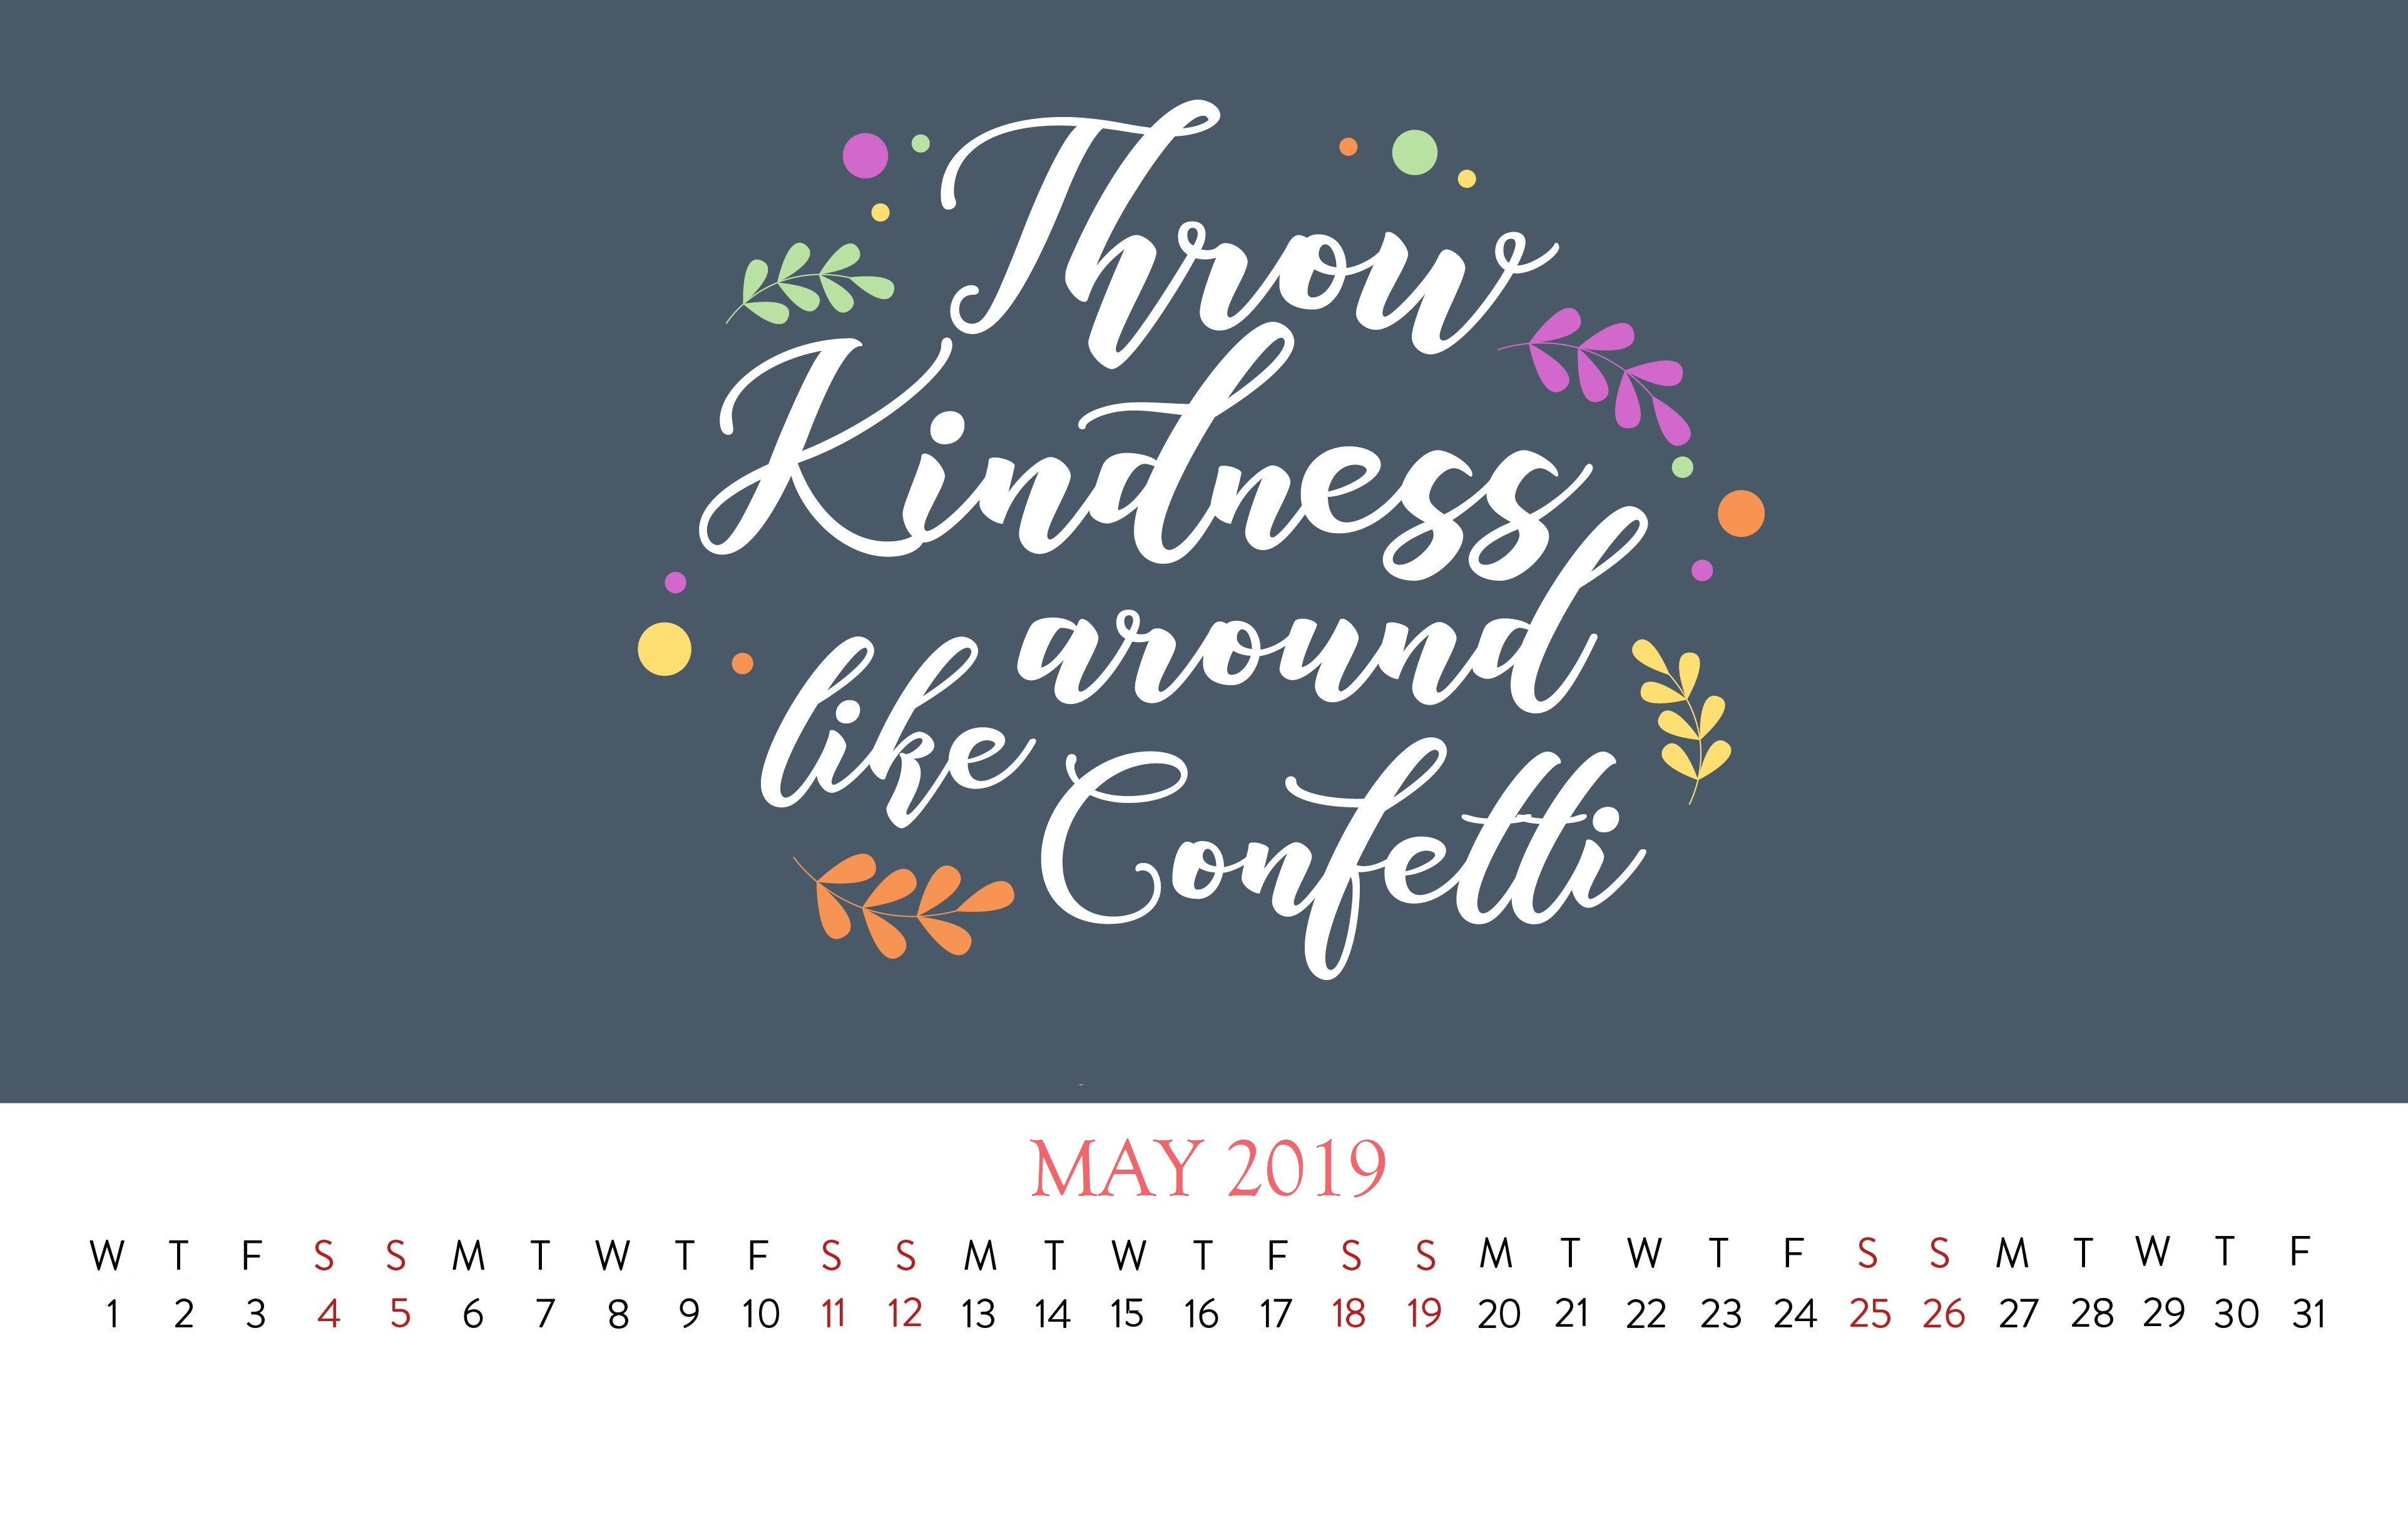 Cute May 2019 Famous Quotes Calendar